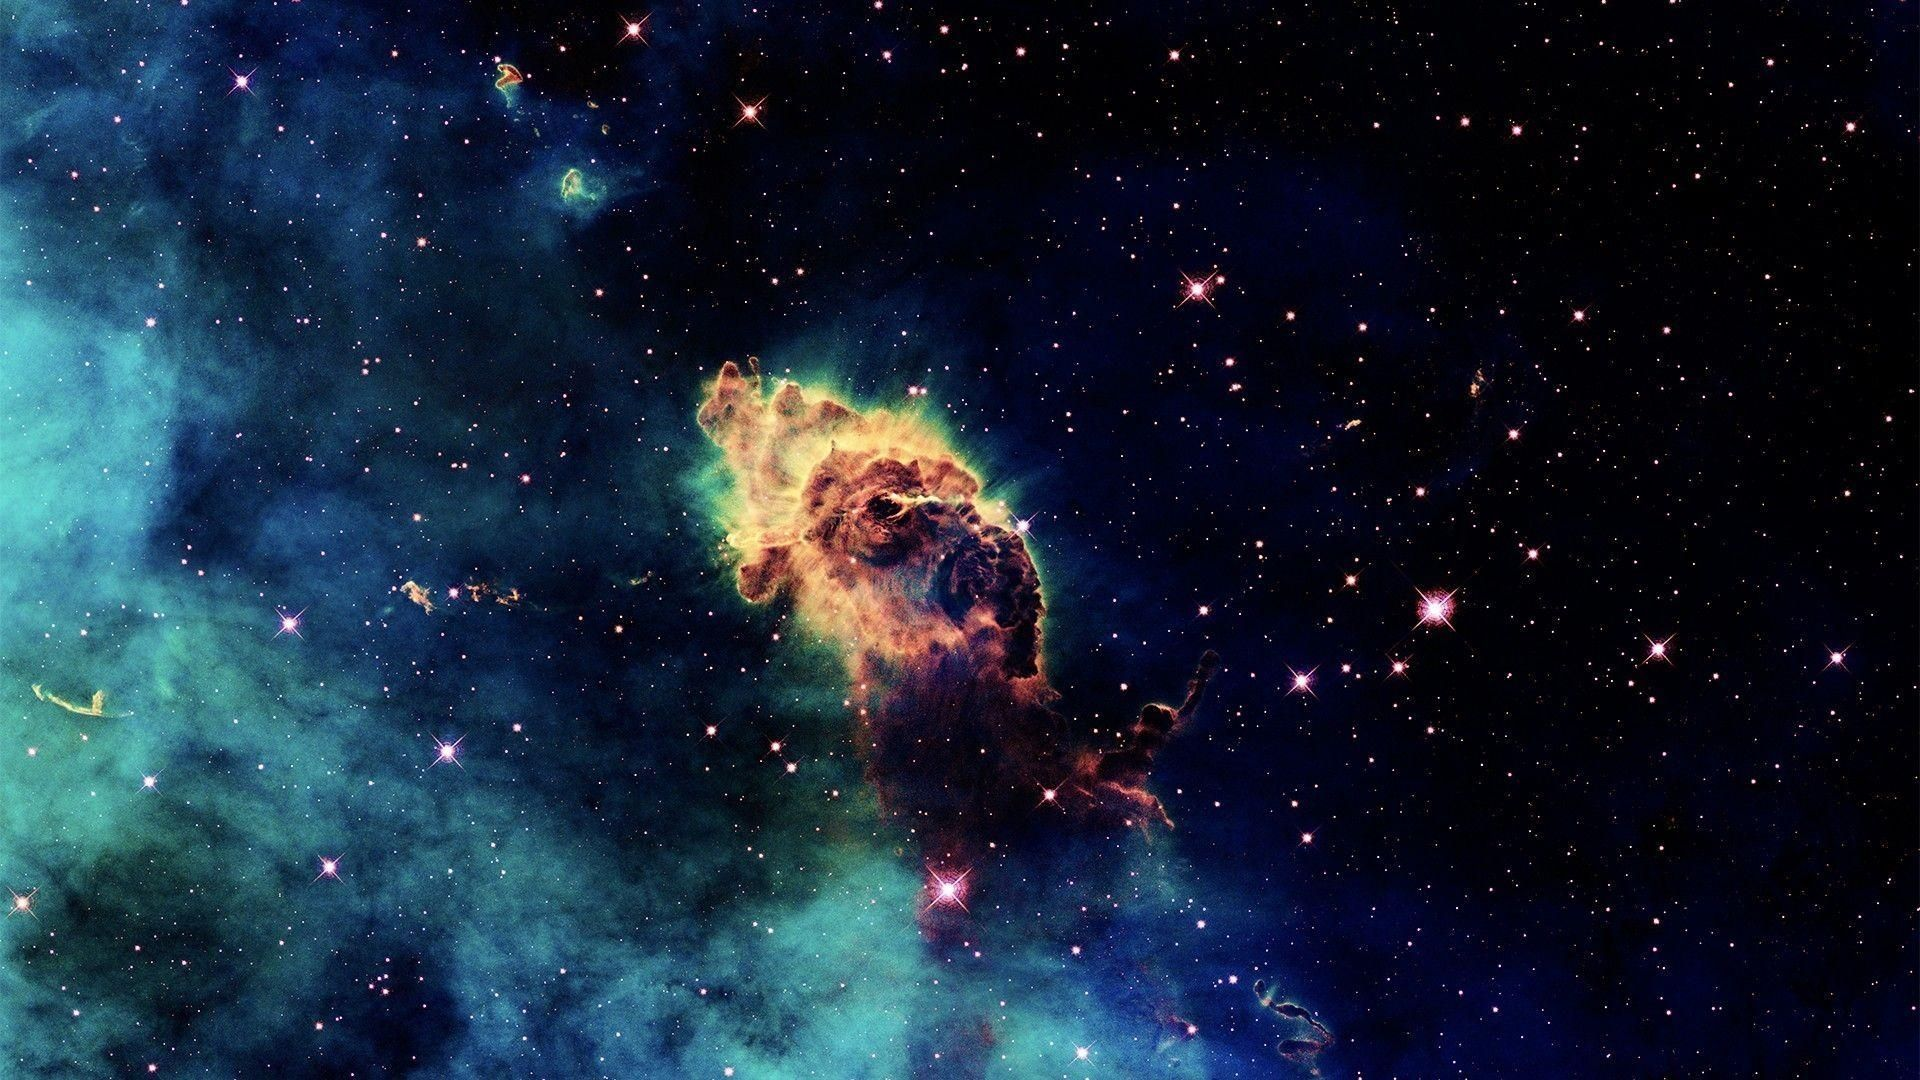 10 Most Popular Space Hd Wallpapers 1080p Full Hd 1080p For Pc Background Nebula Wallpaper Wallpaper Space Nebula